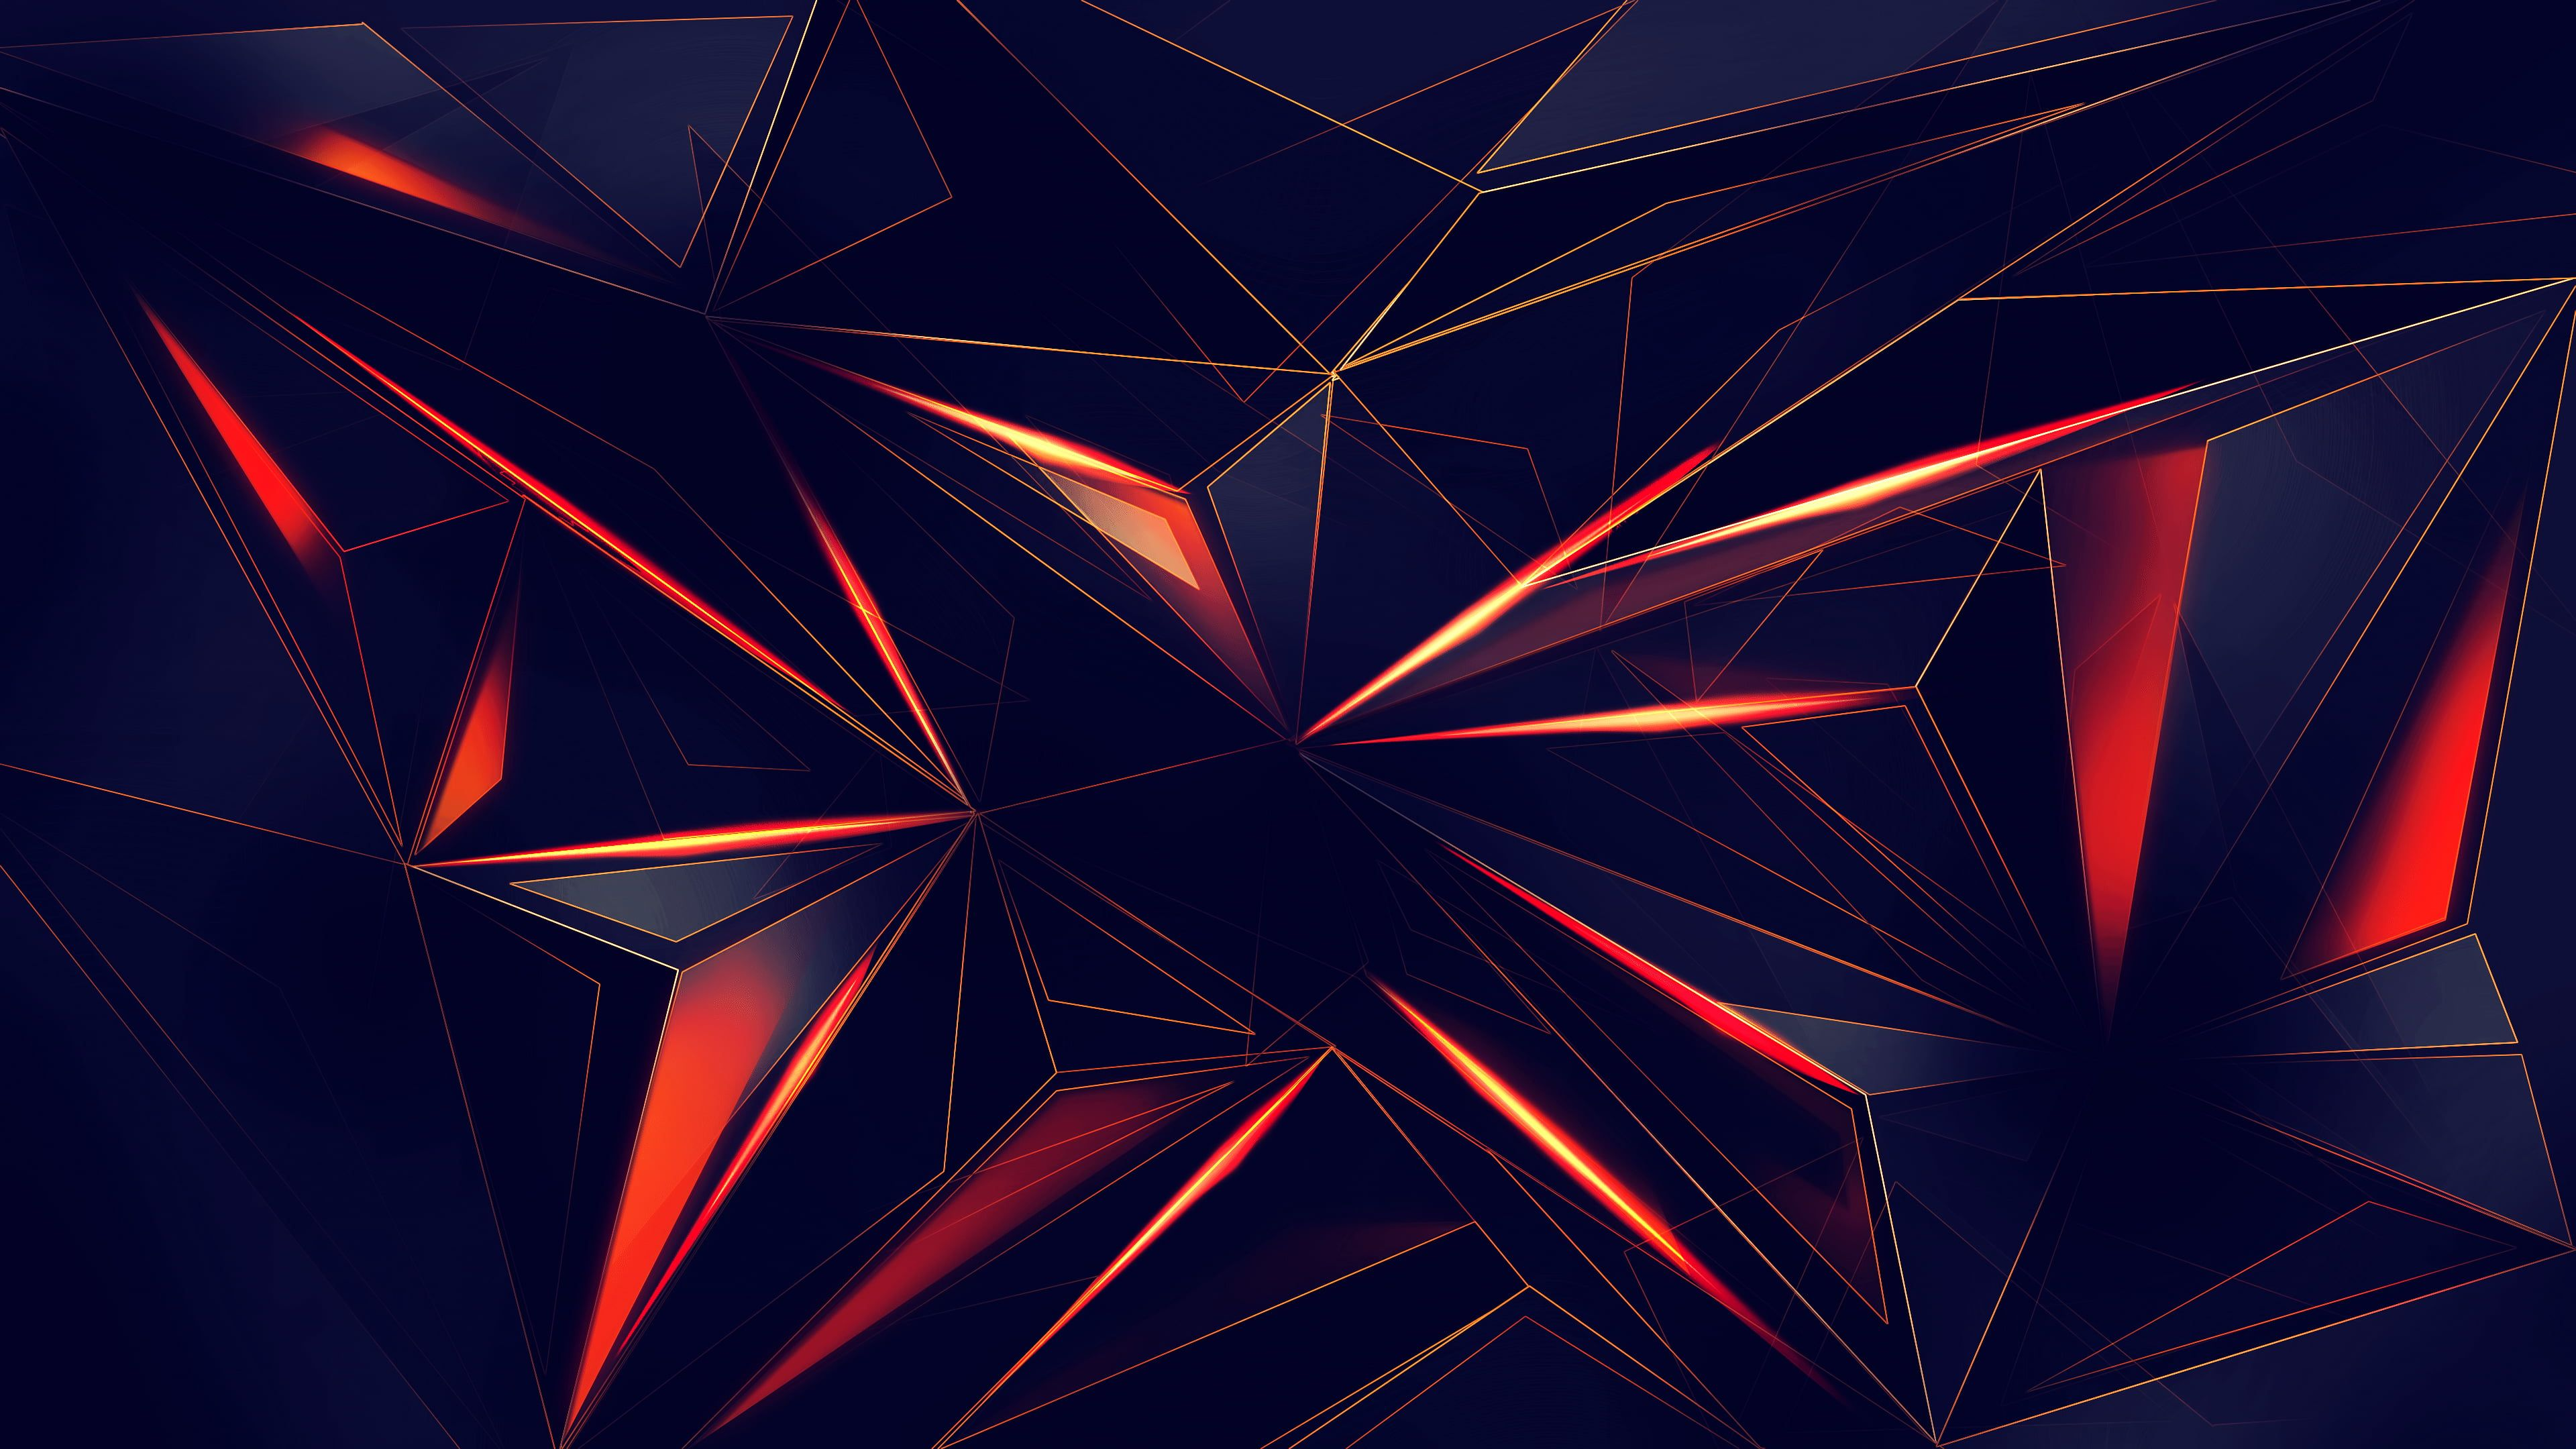 Red And Blue Digital Wallpaper Abstract Digital Art 3d Abstract Lines 4k Wallpaper Hdwallpaper Desktop Abstract Wallpaper Uhd Wallpaper Abstract